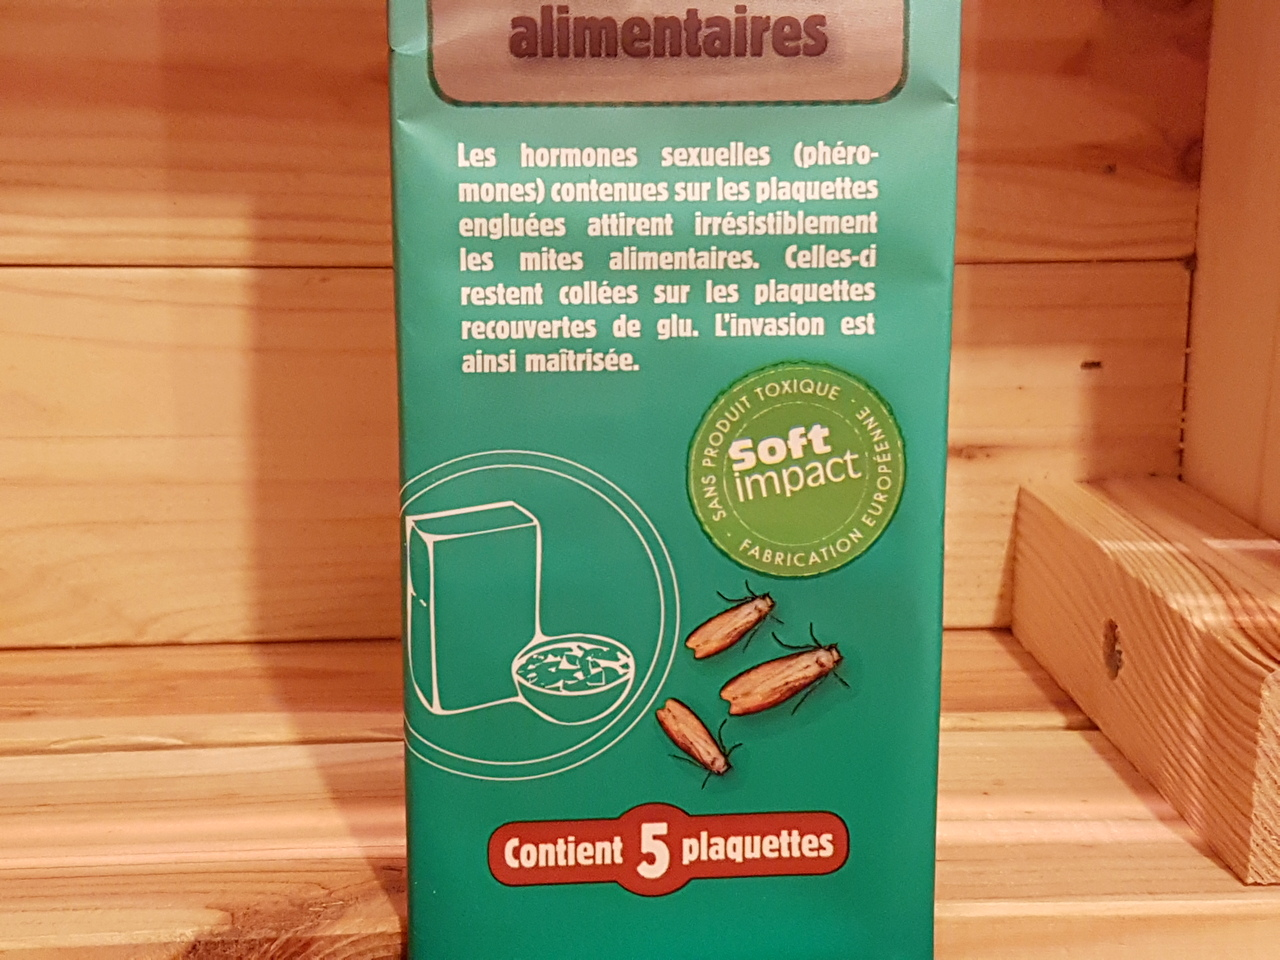 Pieges mites alimentaires 4